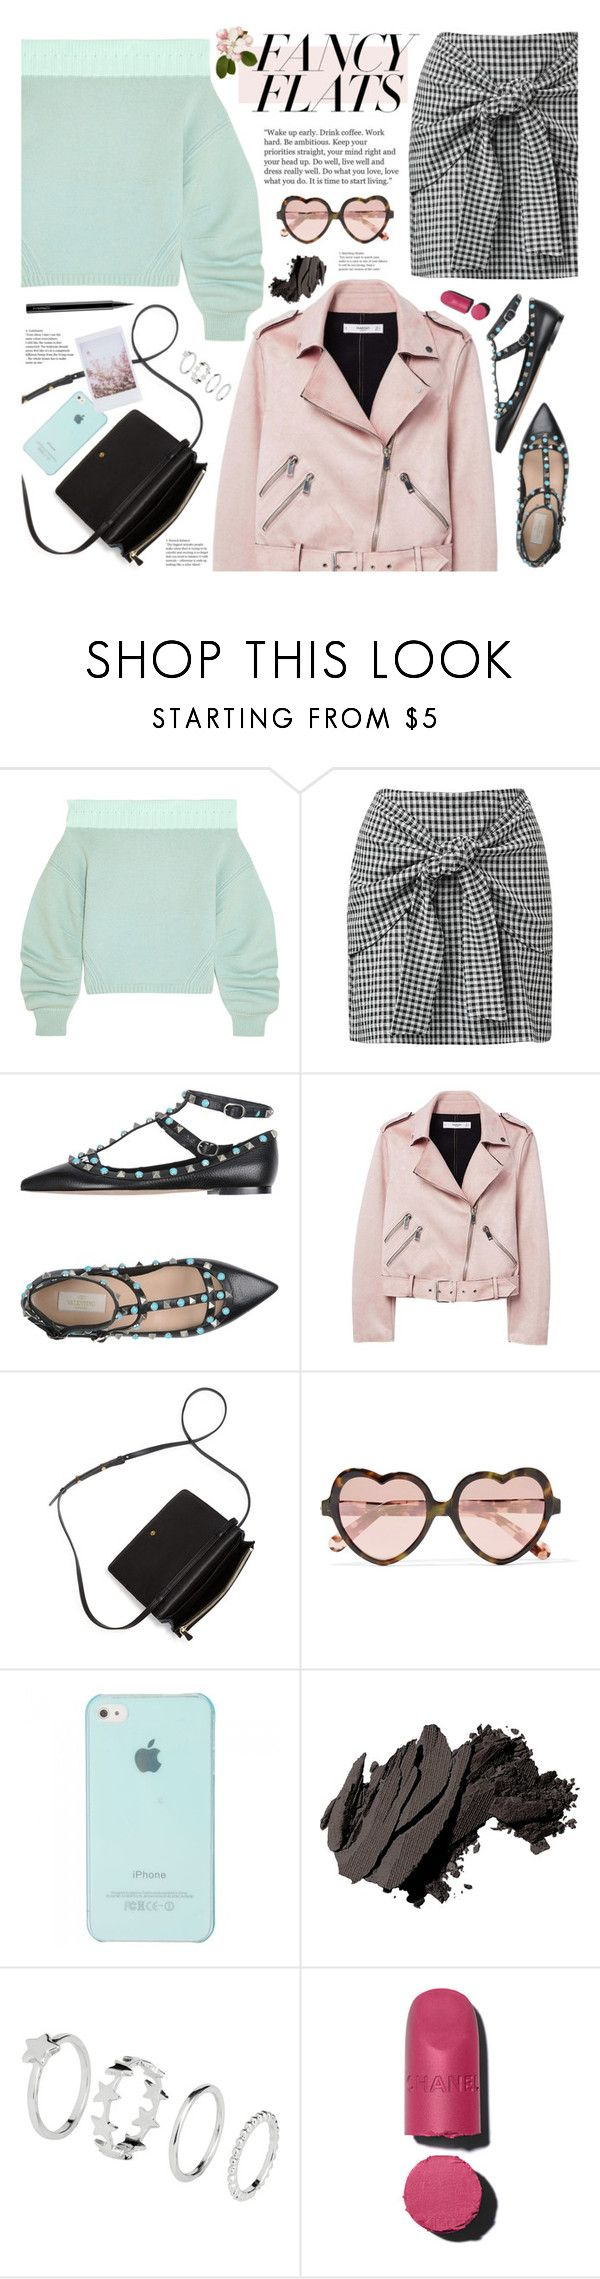 """fancy flats"" by valentino-lover ❤ liked on Polyvore featuring Opening Ceremony, Valentino, MANGO, Marc Jacobs, Cutler and Gross, Bobbi Brown Cosmetics, H&M, Chanel and MAC Cosmetics"